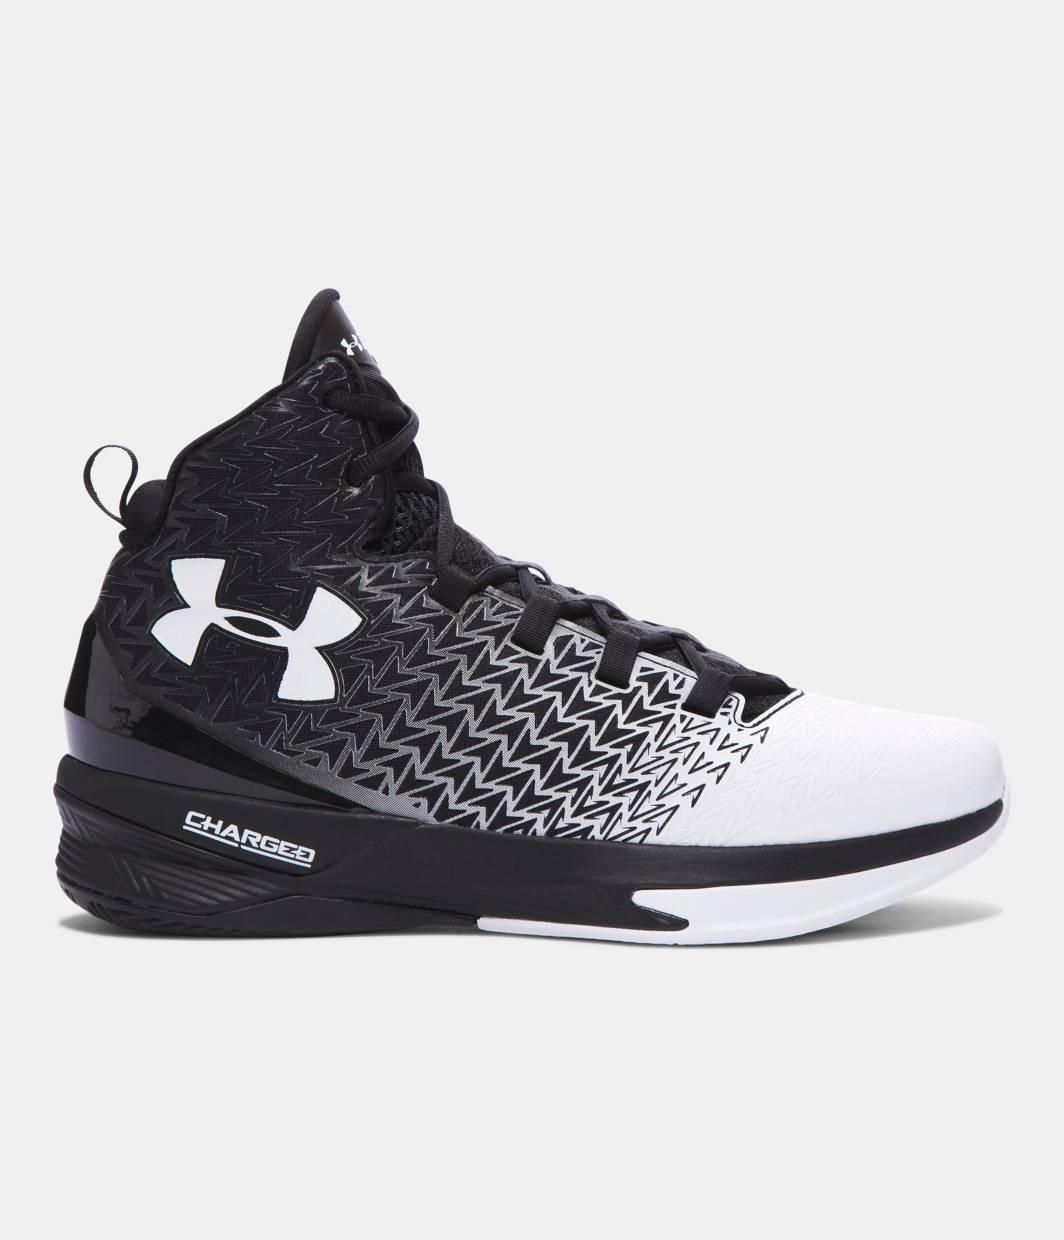 Tênis Basquete Under Armour Clutch Fit Drive Mid 3